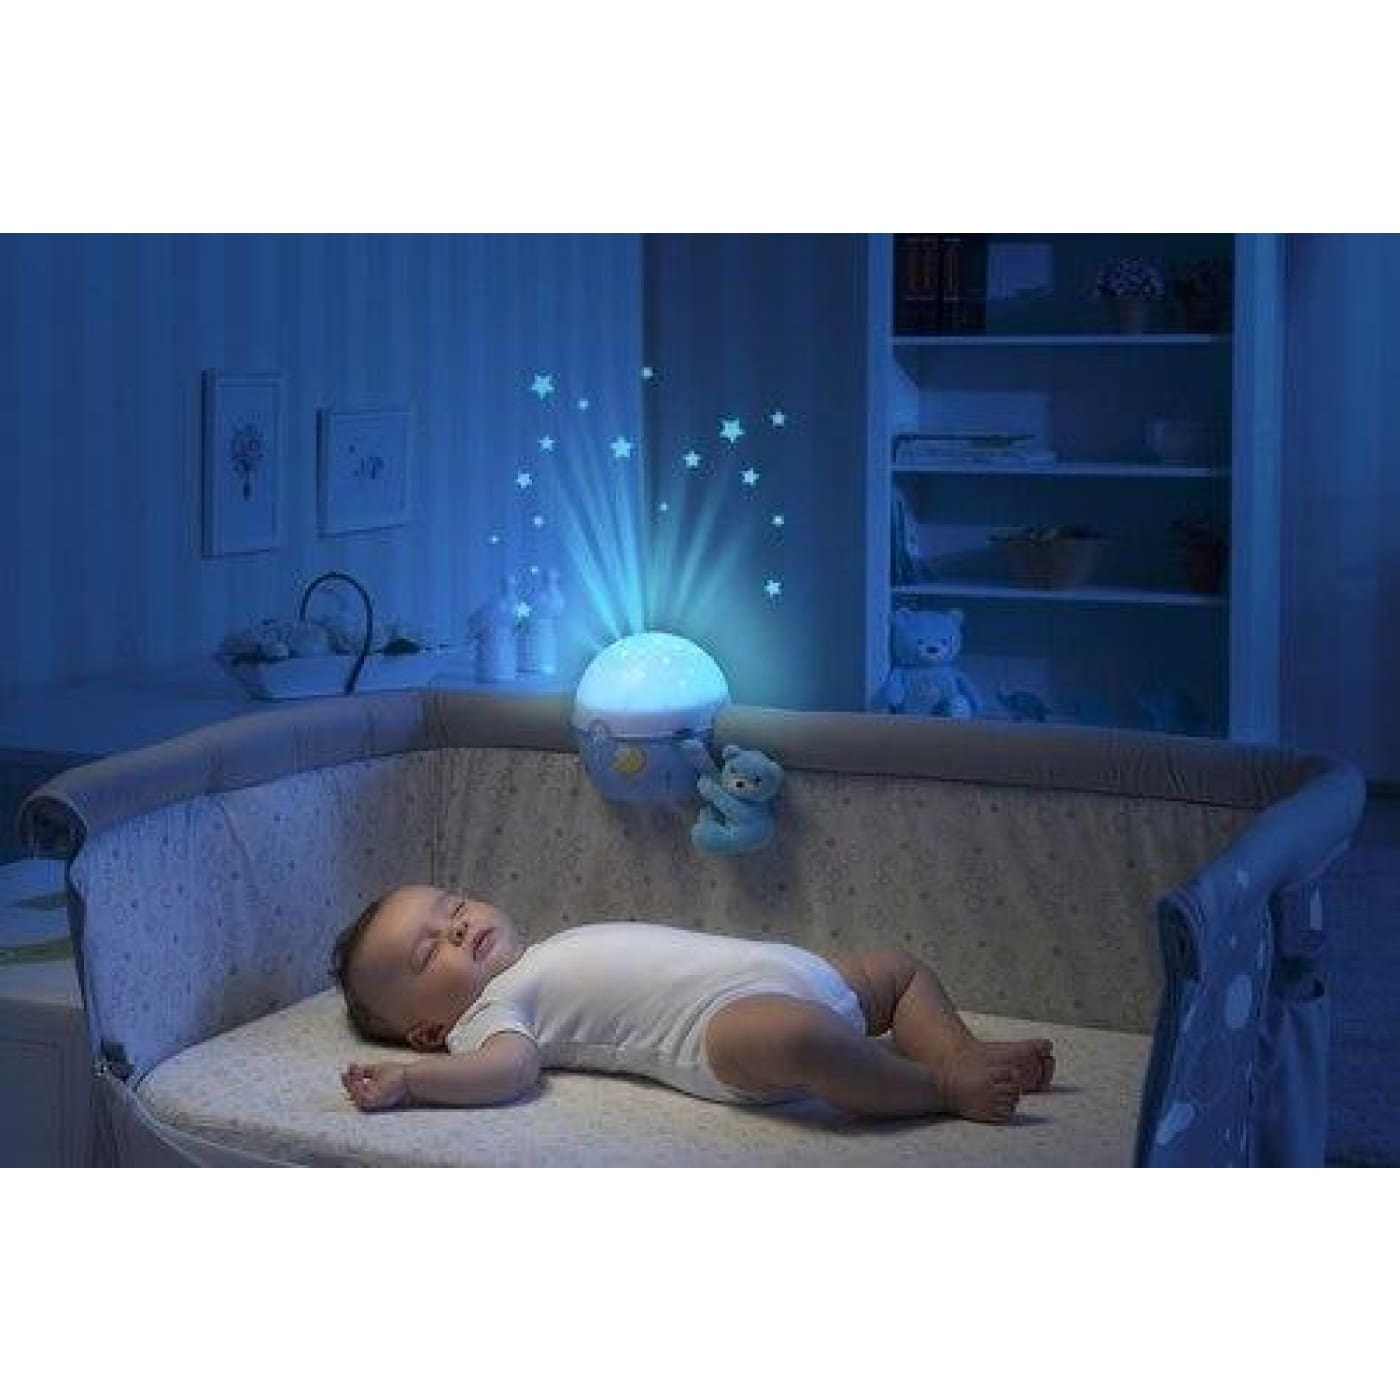 Chicco Next2Stars Projector - Blue - NURSERY & BEDTIME - SLEEP AIDS/NIGHT LIGHTS